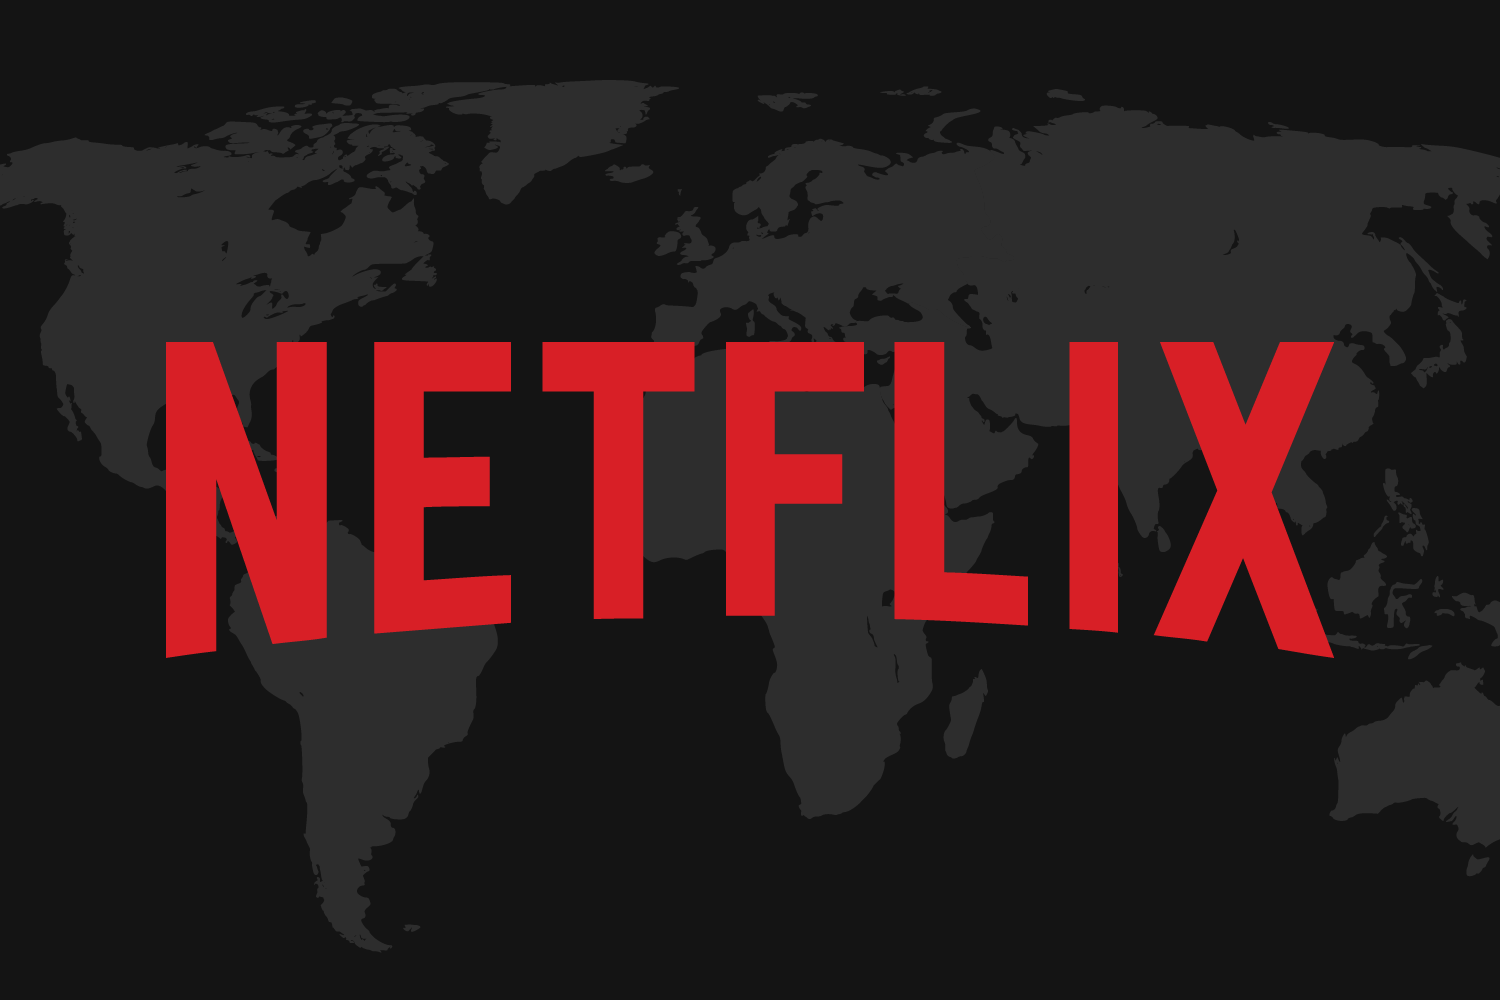 Netflix speed test: How to check if you can stream 4K Ultra HD